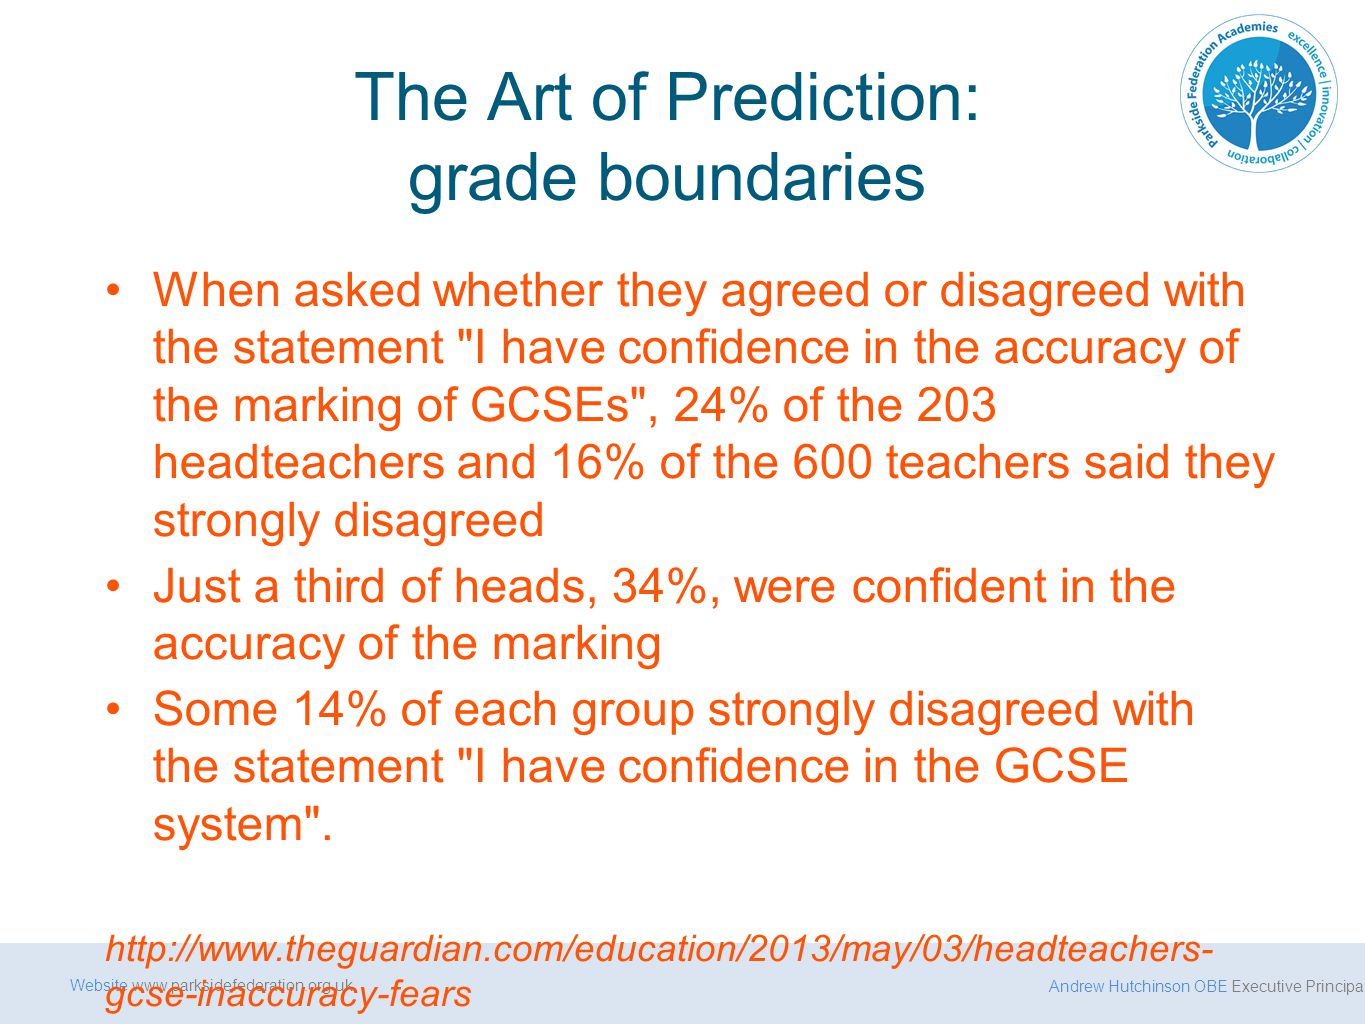 Andrew Hutchinson OBE Executive Principal Website www.parksidefederation.org.uk The Art of Prediction: grade boundaries When asked whether they agreed or disagreed with the statement I have confidence in the accuracy of the marking of GCSEs , 24% of the 203 headteachers and 16% of the 600 teachers said they strongly disagreed Just a third of heads, 34%, were confident in the accuracy of the marking Some 14% of each group strongly disagreed with the statement I have confidence in the GCSE system .